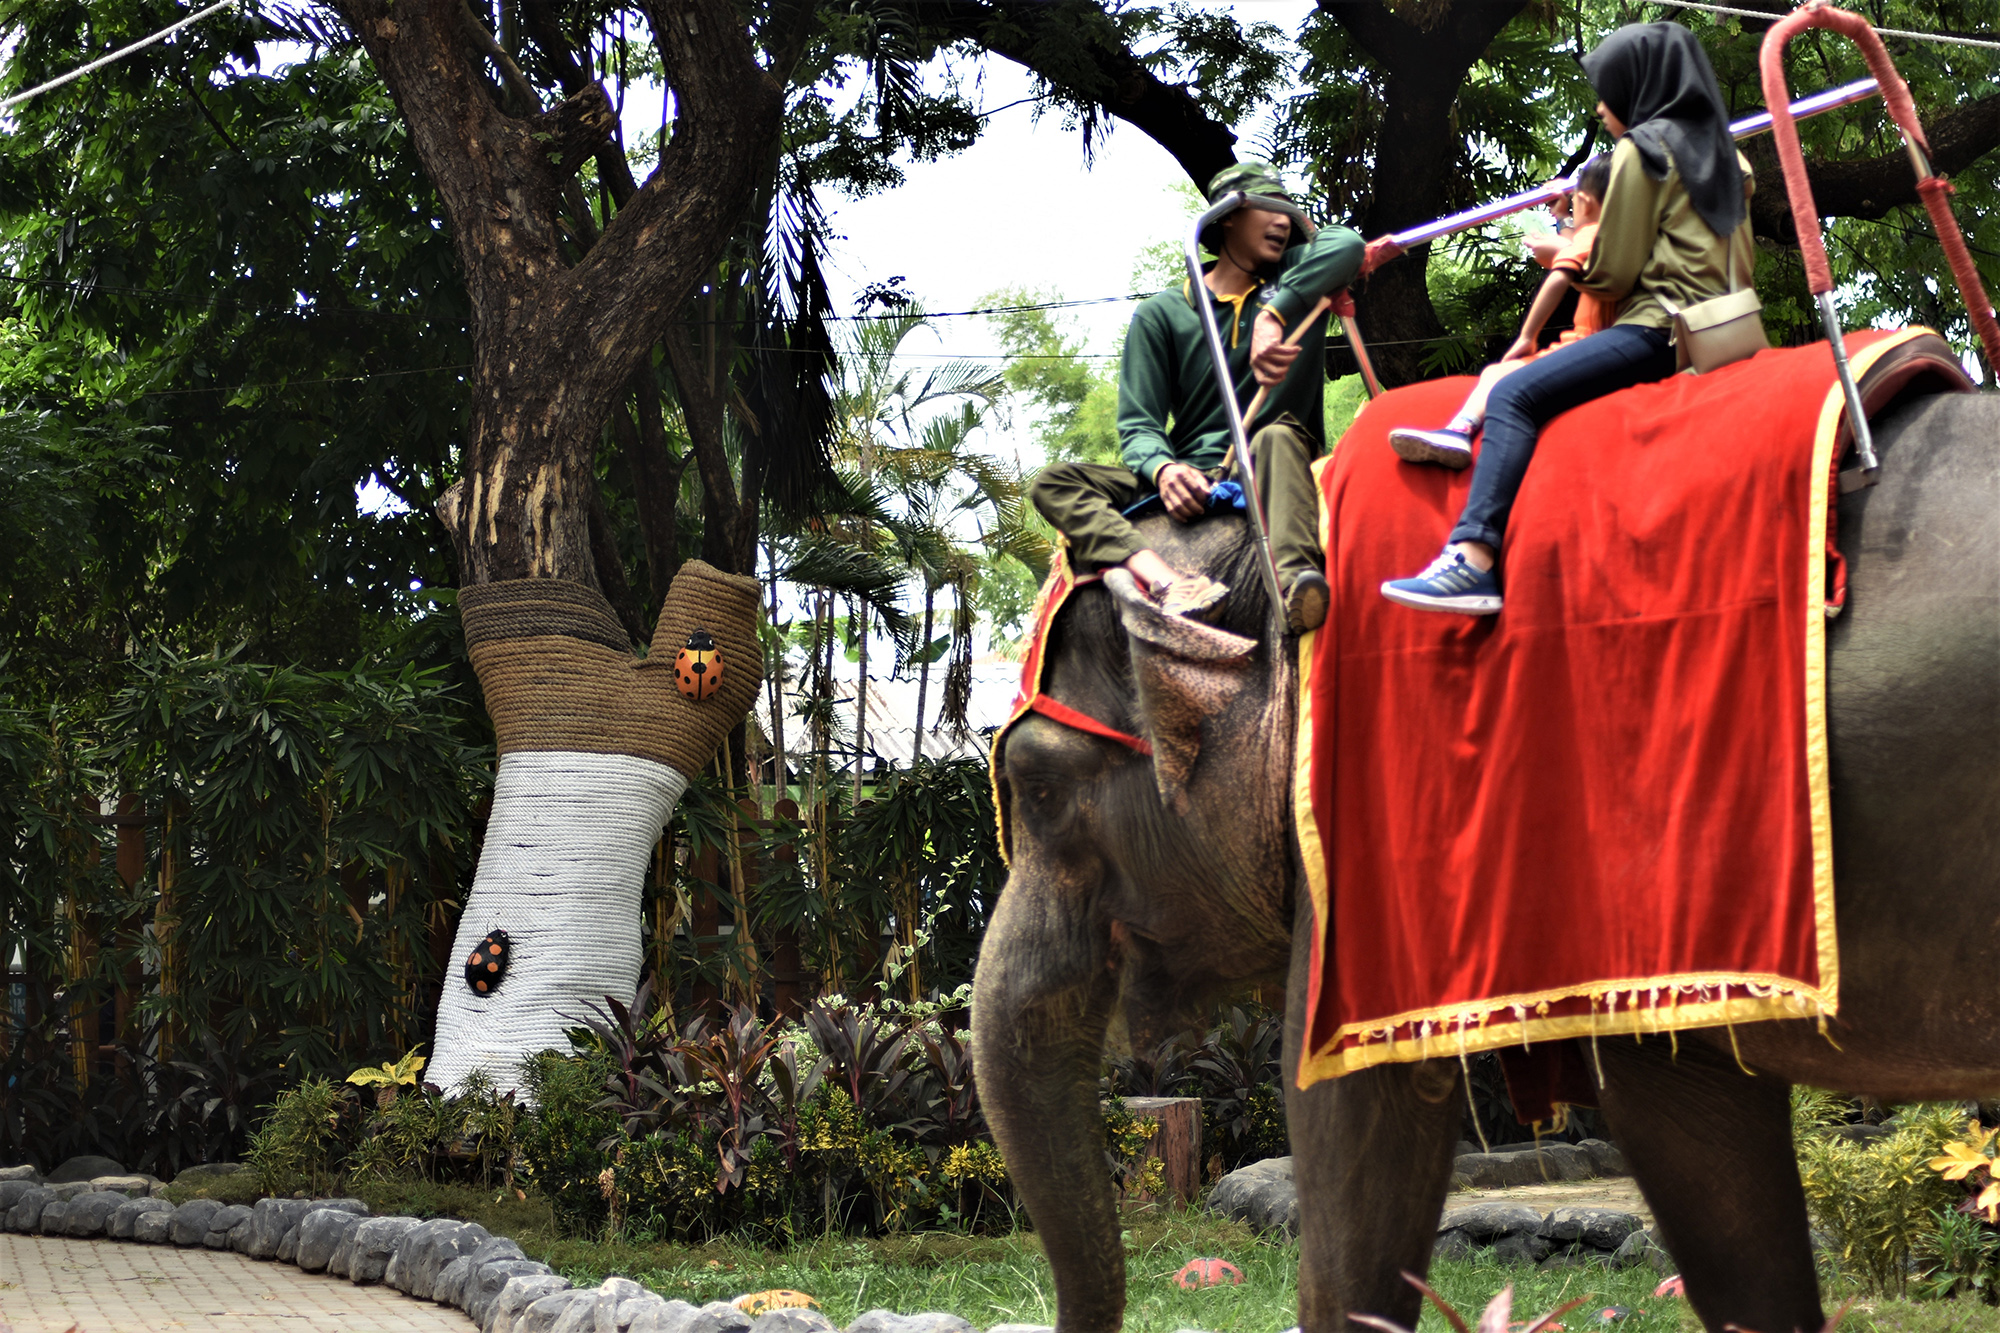 Scorpion Wildlife Trade Monitoring Group Insists an End to the Elephant Riding at the Surabaya Zoo (January  6, 2020)